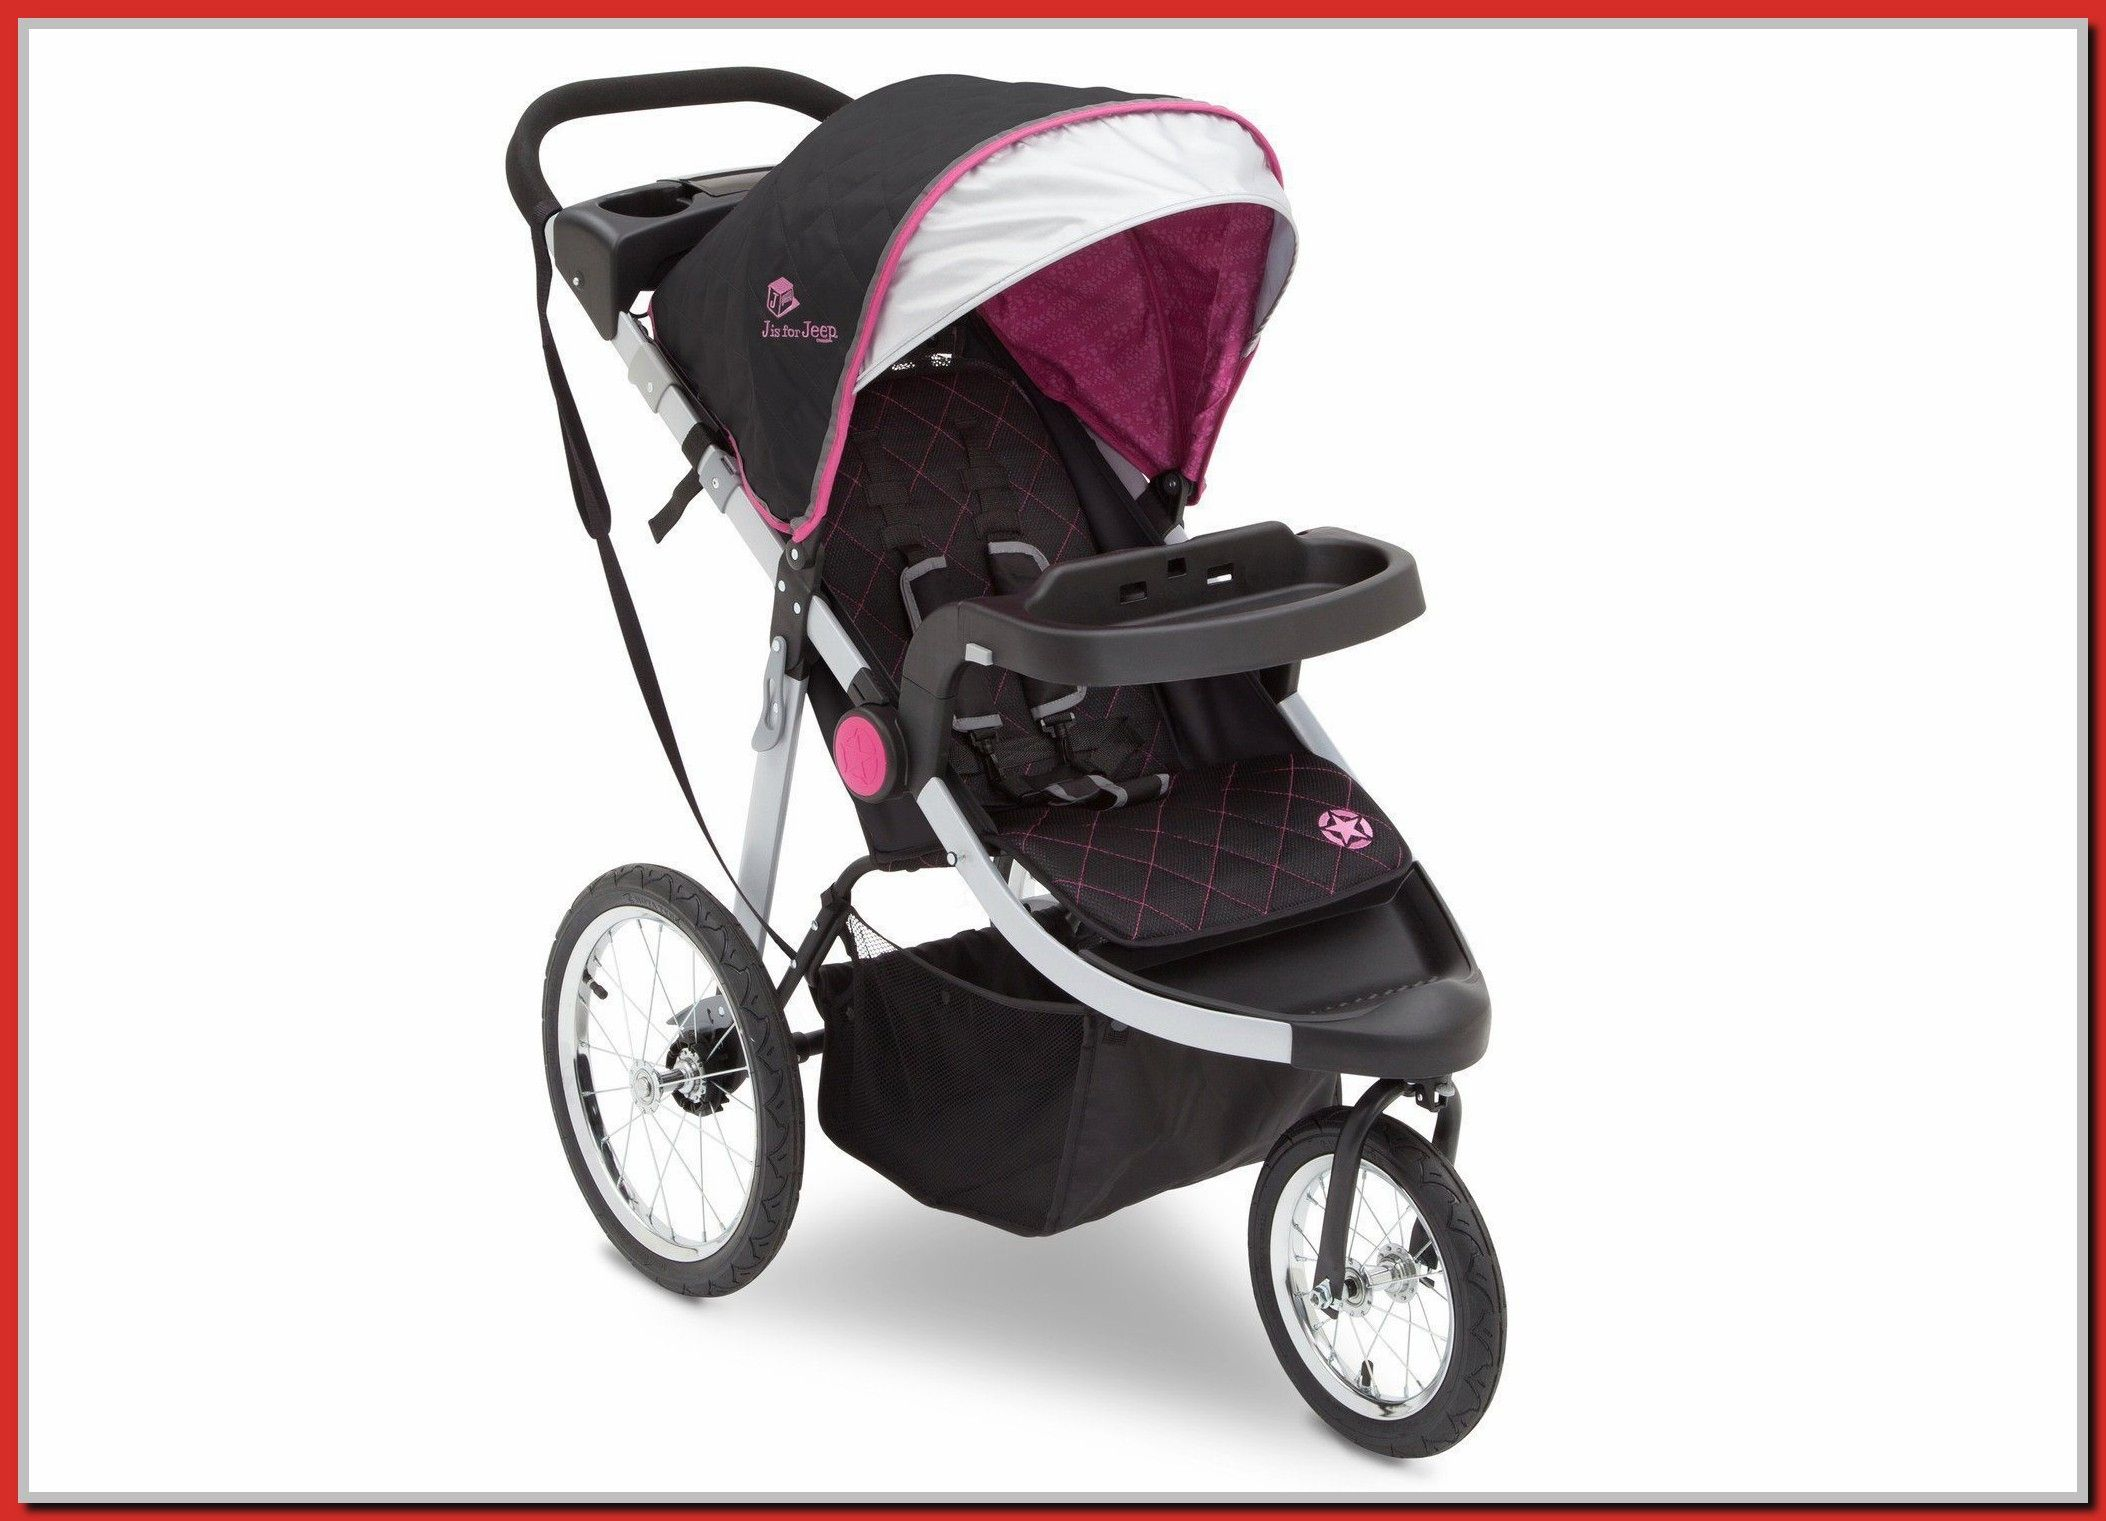 Pin On Jogging Stroller Wheel Covers